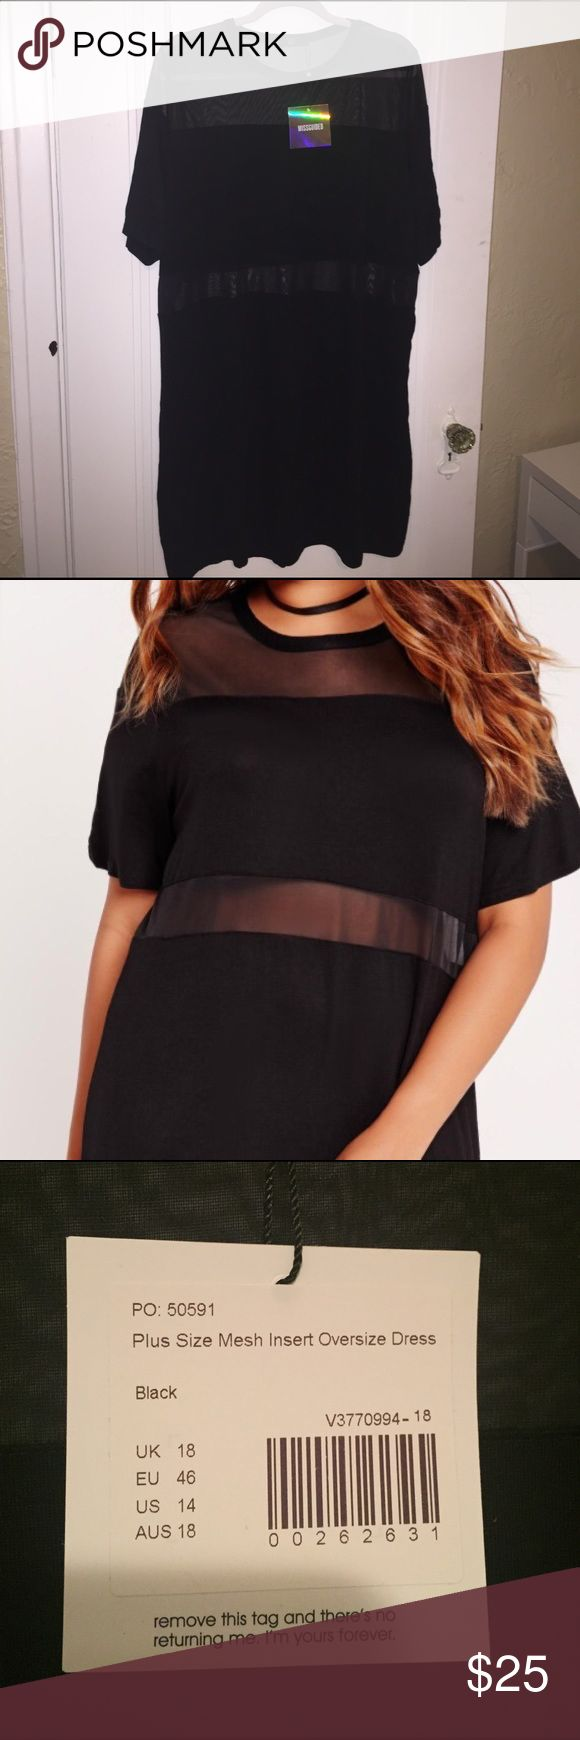 Missguided Mesh Insert Oversized Dress NWT! Missguided Plus Size Mesh Insert Oversized T-Shirt Dress Missguided + Dresses